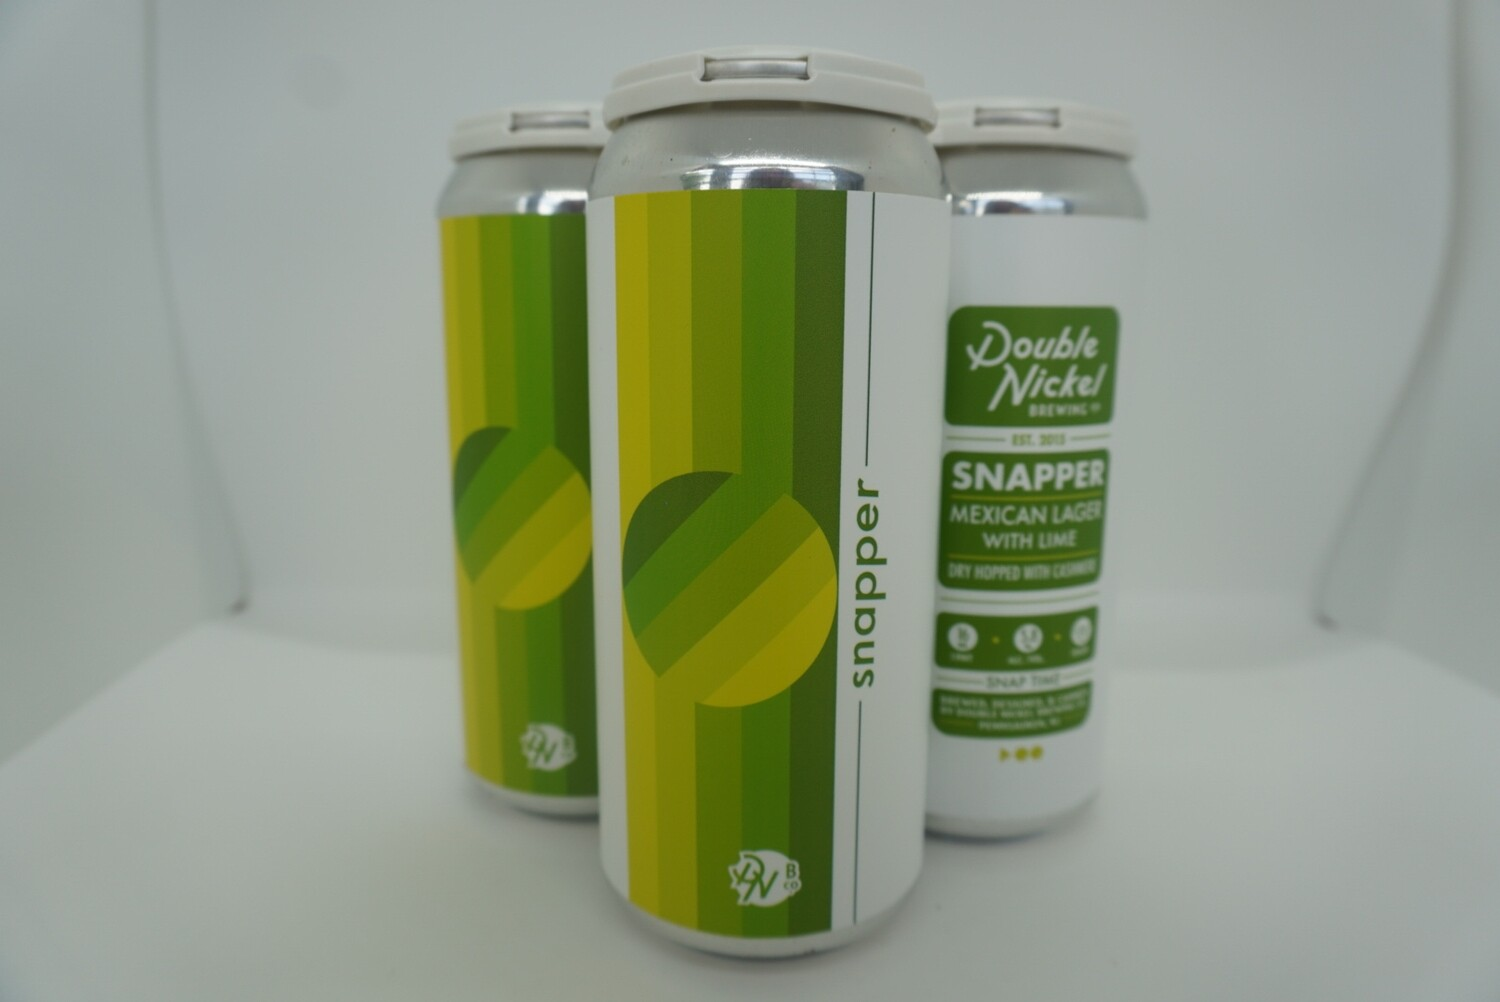 Double Nickel - Snapper Dry Hop - Mexican Lager - 5.8% ABV - 4 Pack